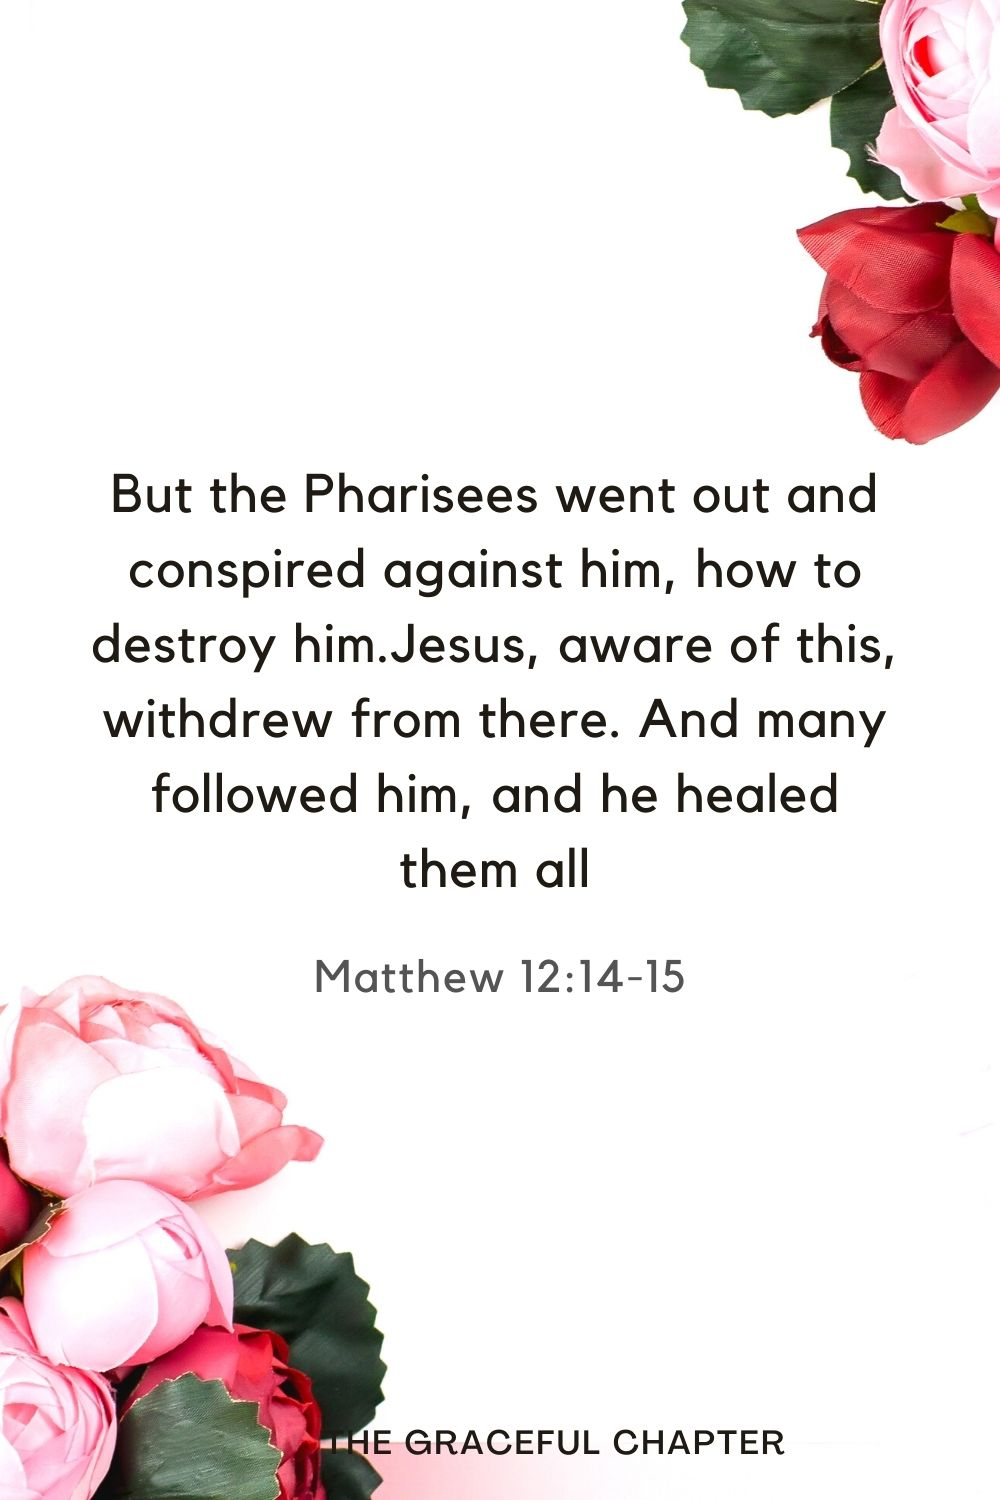 But the Pharisees went out and conspired against him, how to destroy him.Jesus, aware of this, withdrew from there. And many followed him, and he healed them all Matthew 12:14-15